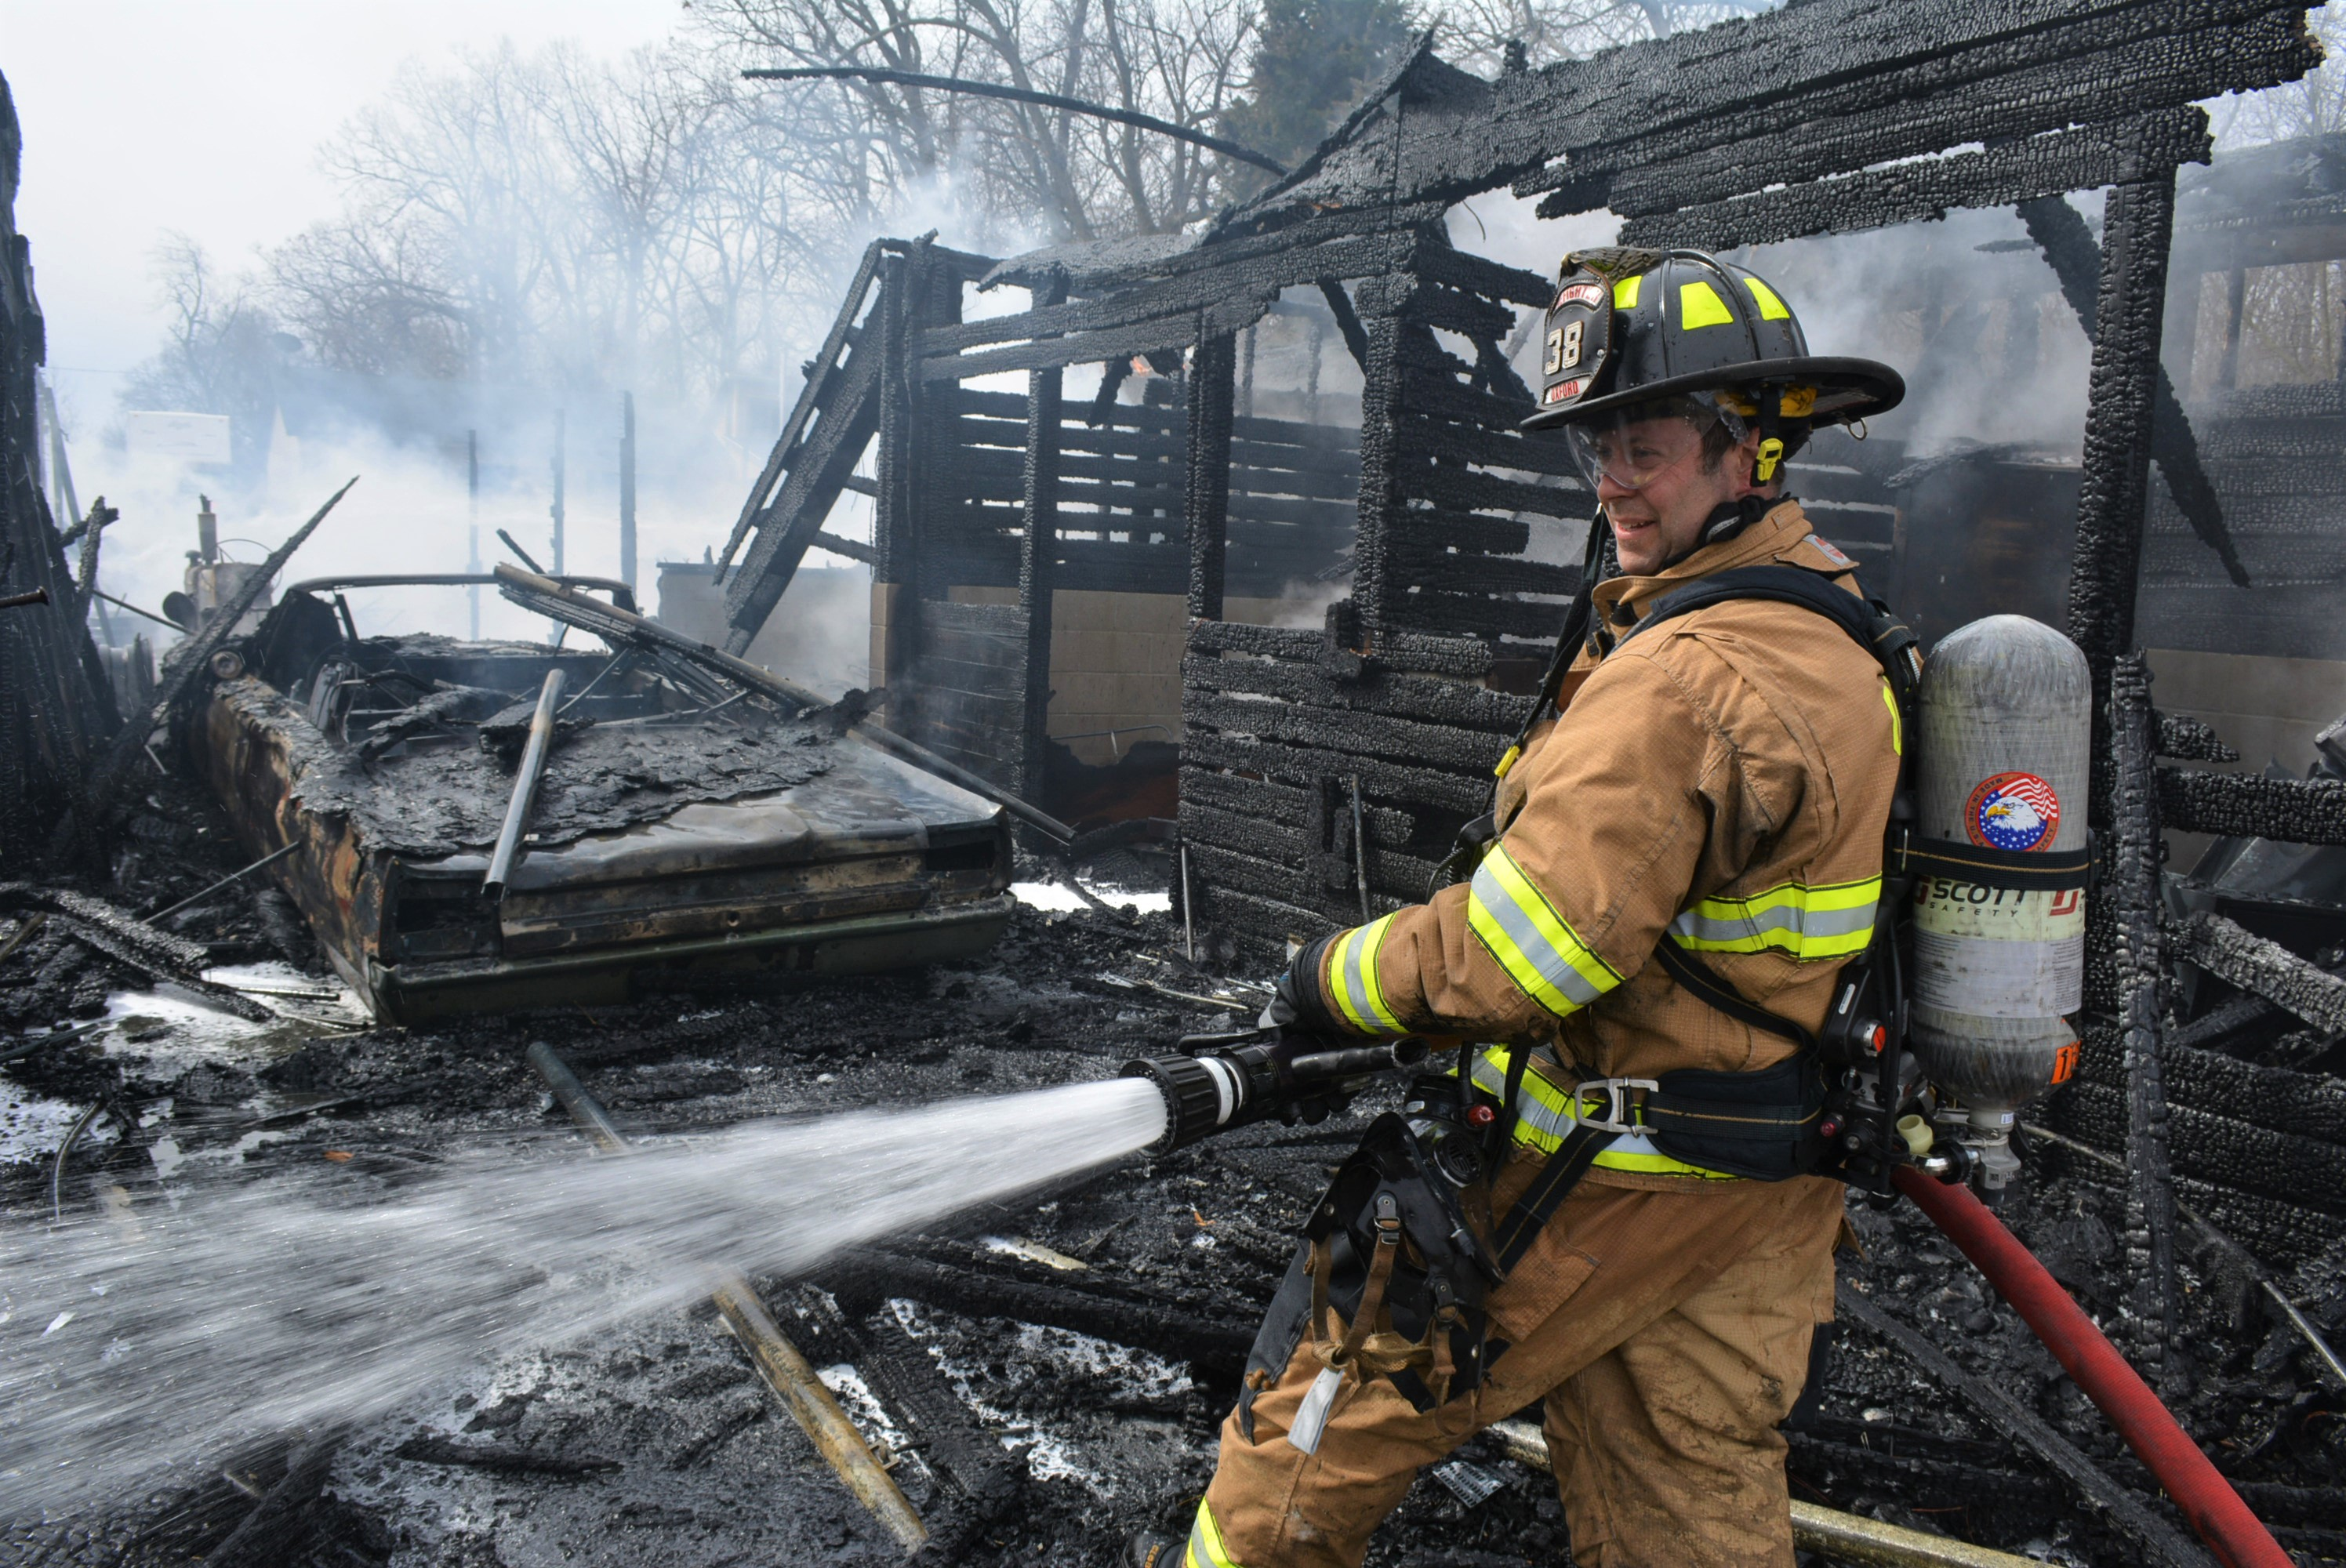 Back in March, OXFD tried to save the Wilson family's barn. Pictured is firefighter Randy Darnell hosing down the barn's remains. Photo by C.J. Carnacchio.